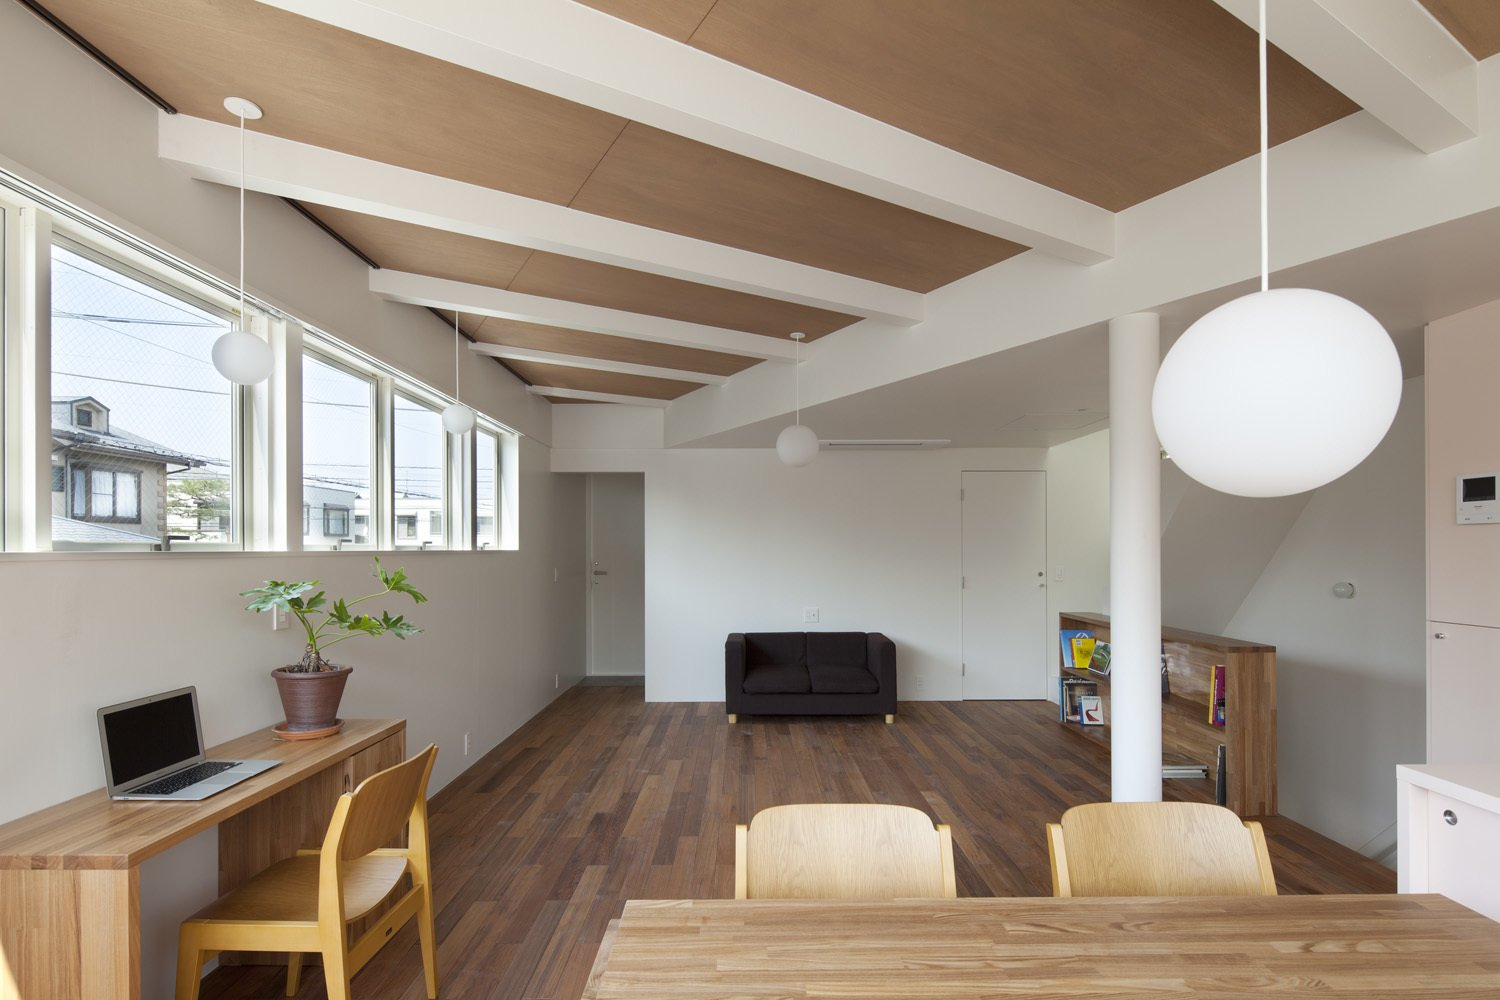 The ceilings of the two houses were at slightly different heights, an incongruity Nakasi played up for visual punch. He exposed the beams in the higher ceiling and painted them white to match the smooth finish of the lower one. The desk beneath the window is from Muji.  Modern Homes in Tokyo by William Harrison